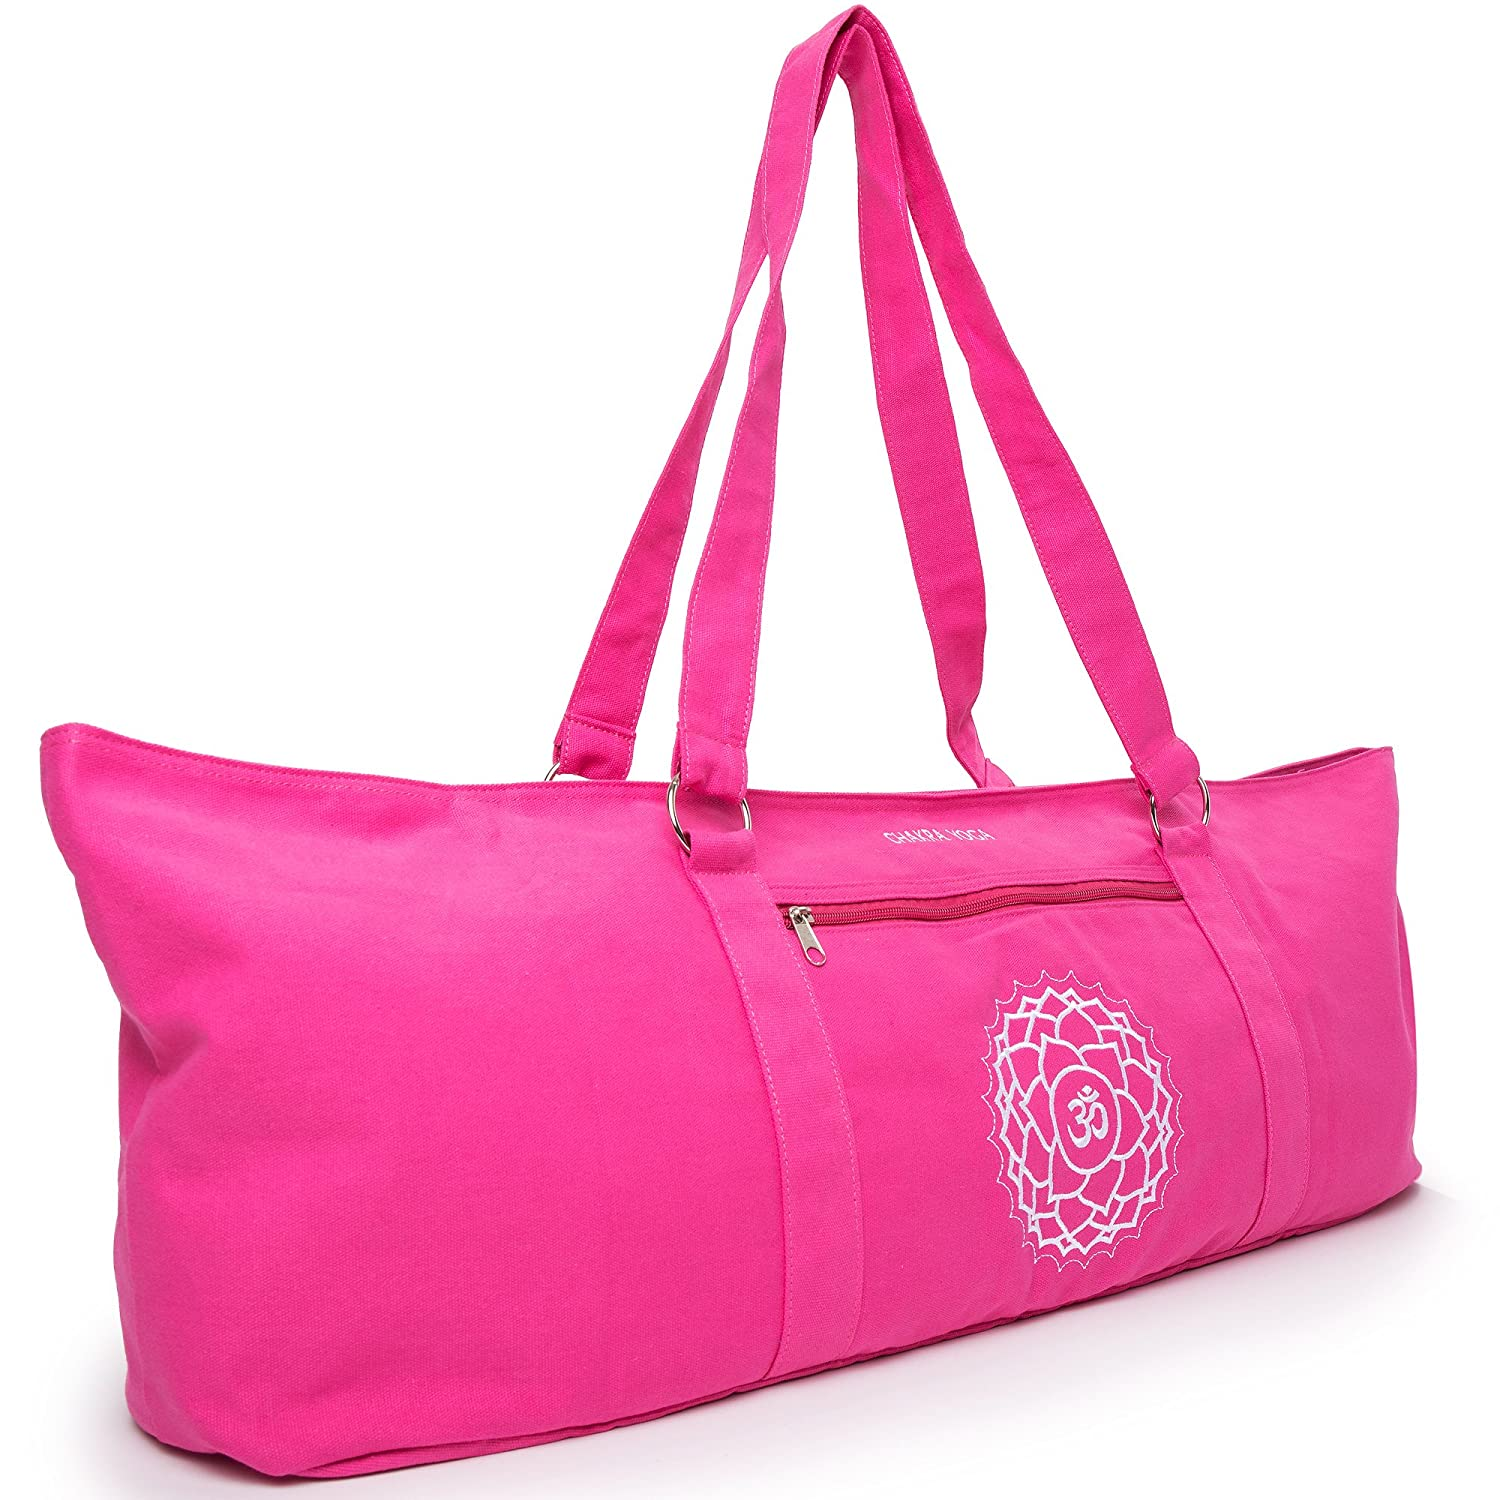 a48316df31 Amazon.com   Sahasrara Extra large yoga mat bag   Sports   Outdoors